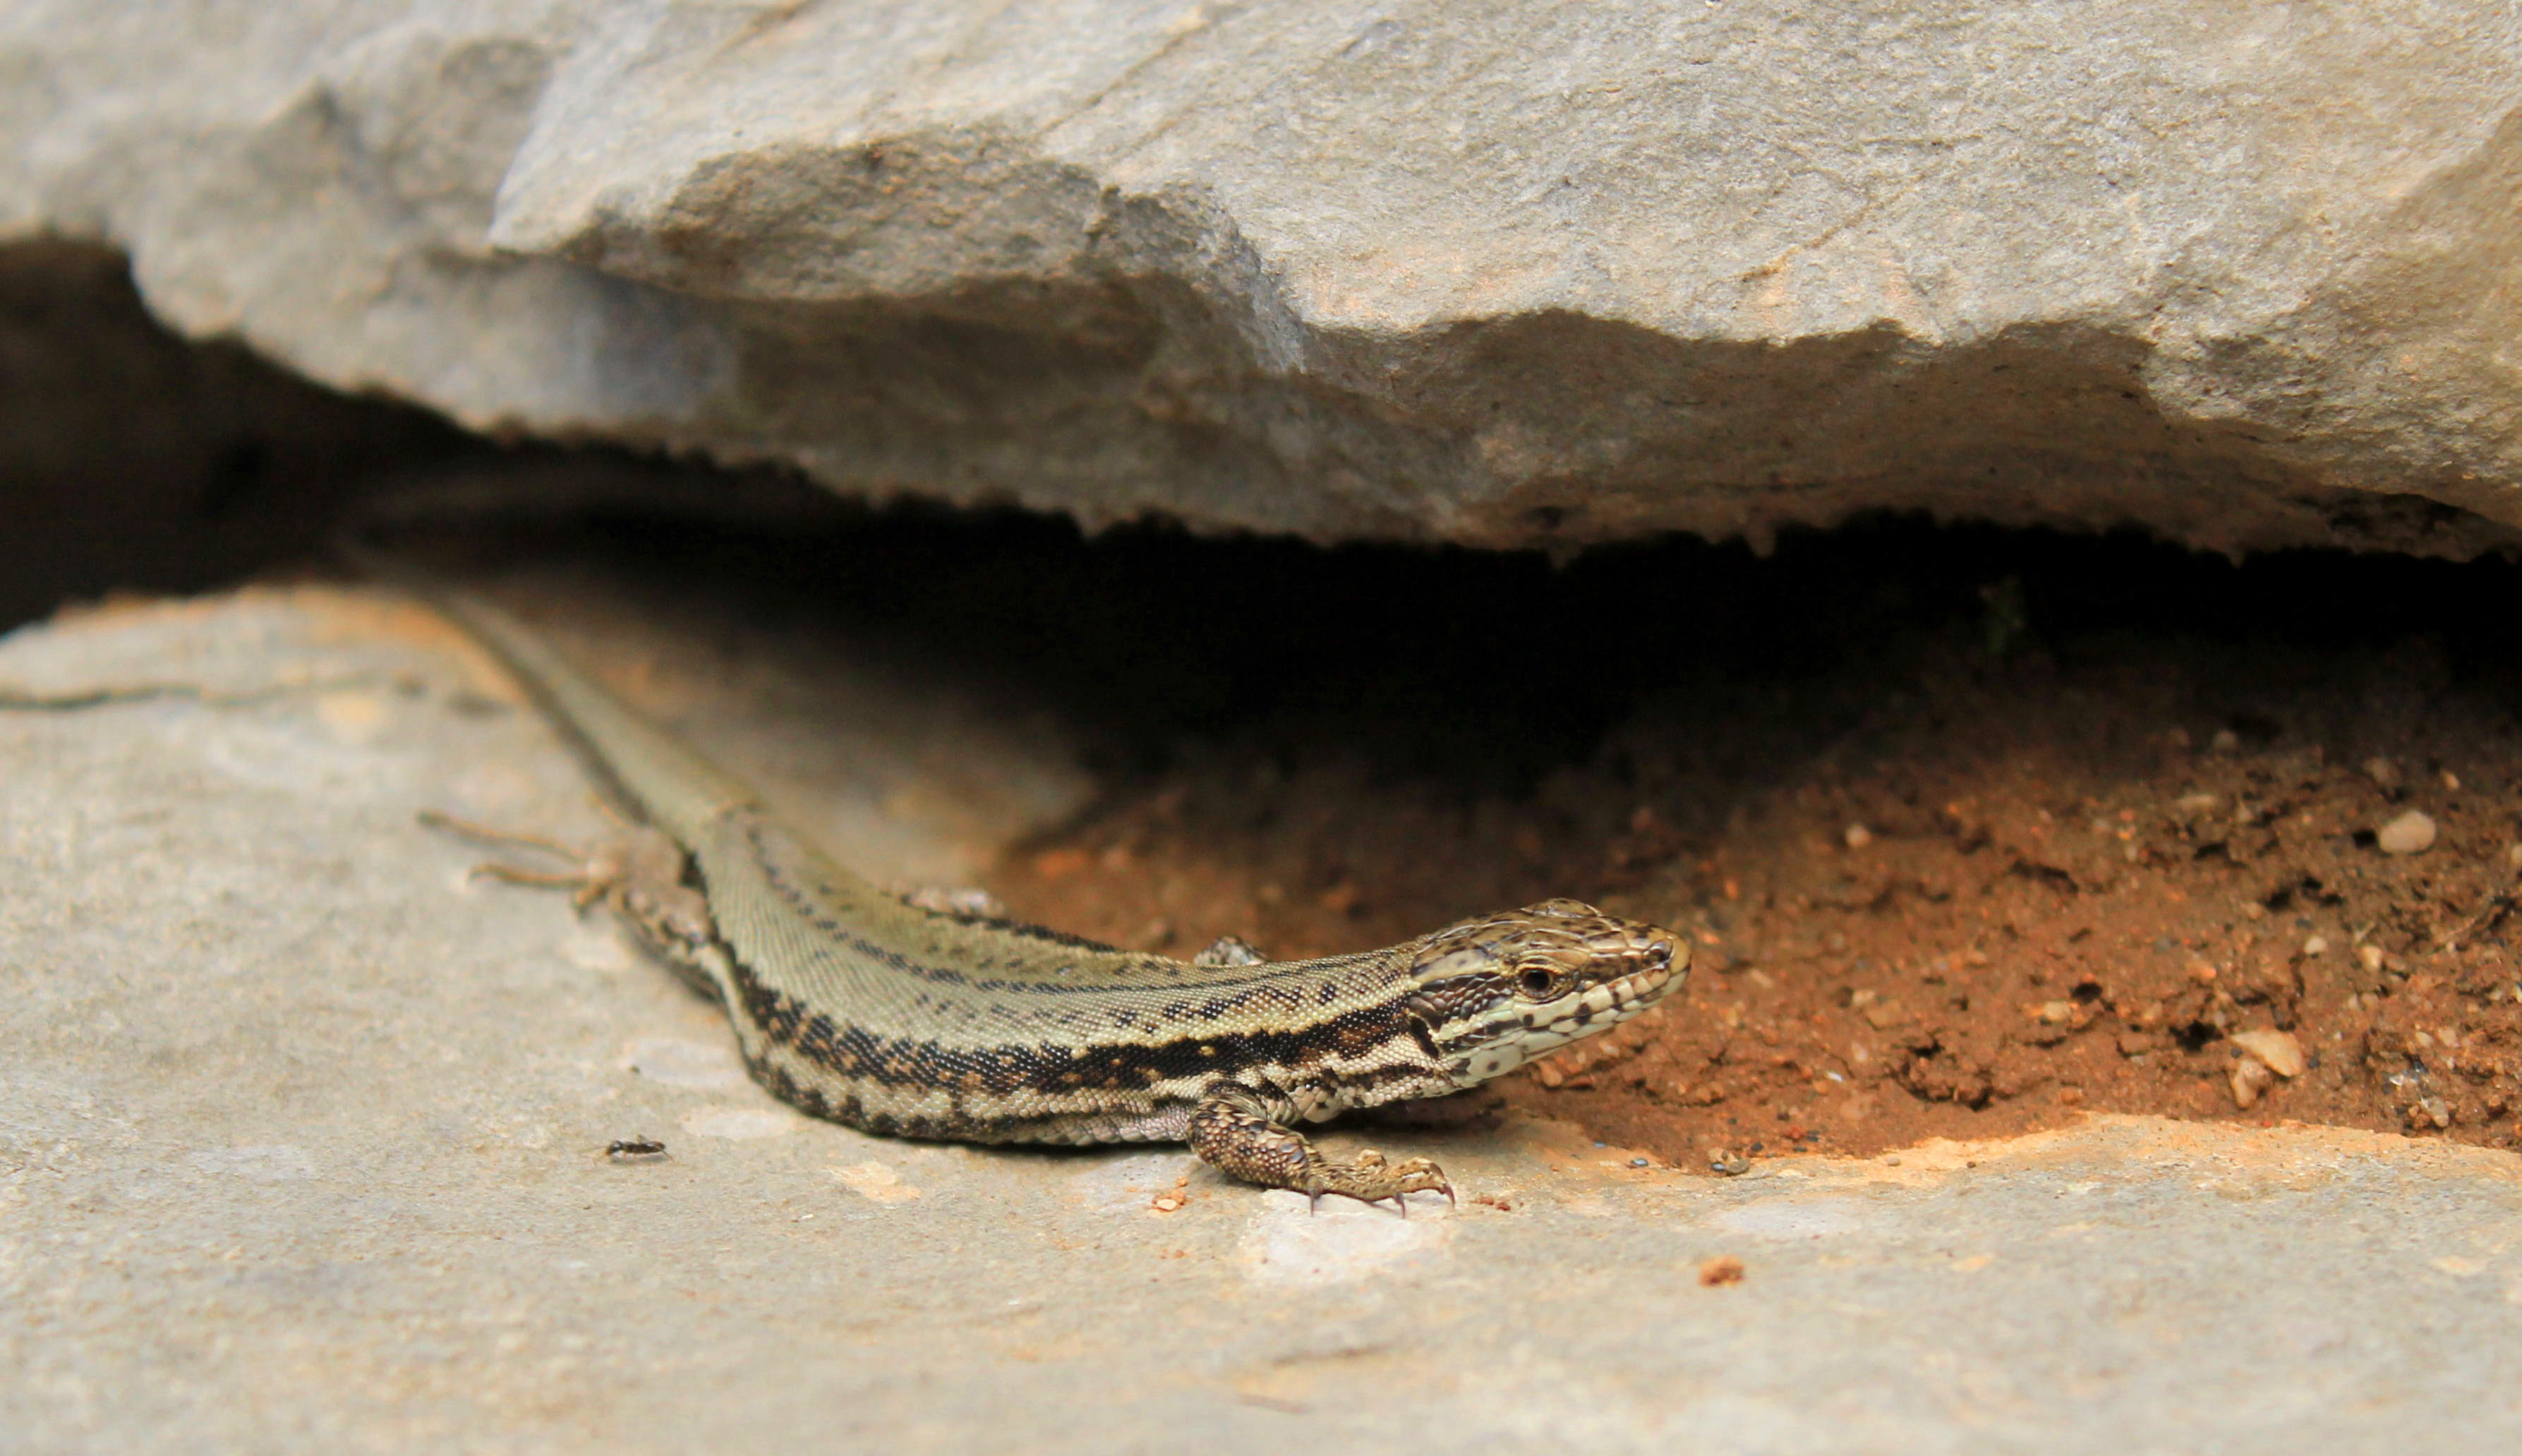 One of the few photographs I managed to get before he slithered back underneath the rock